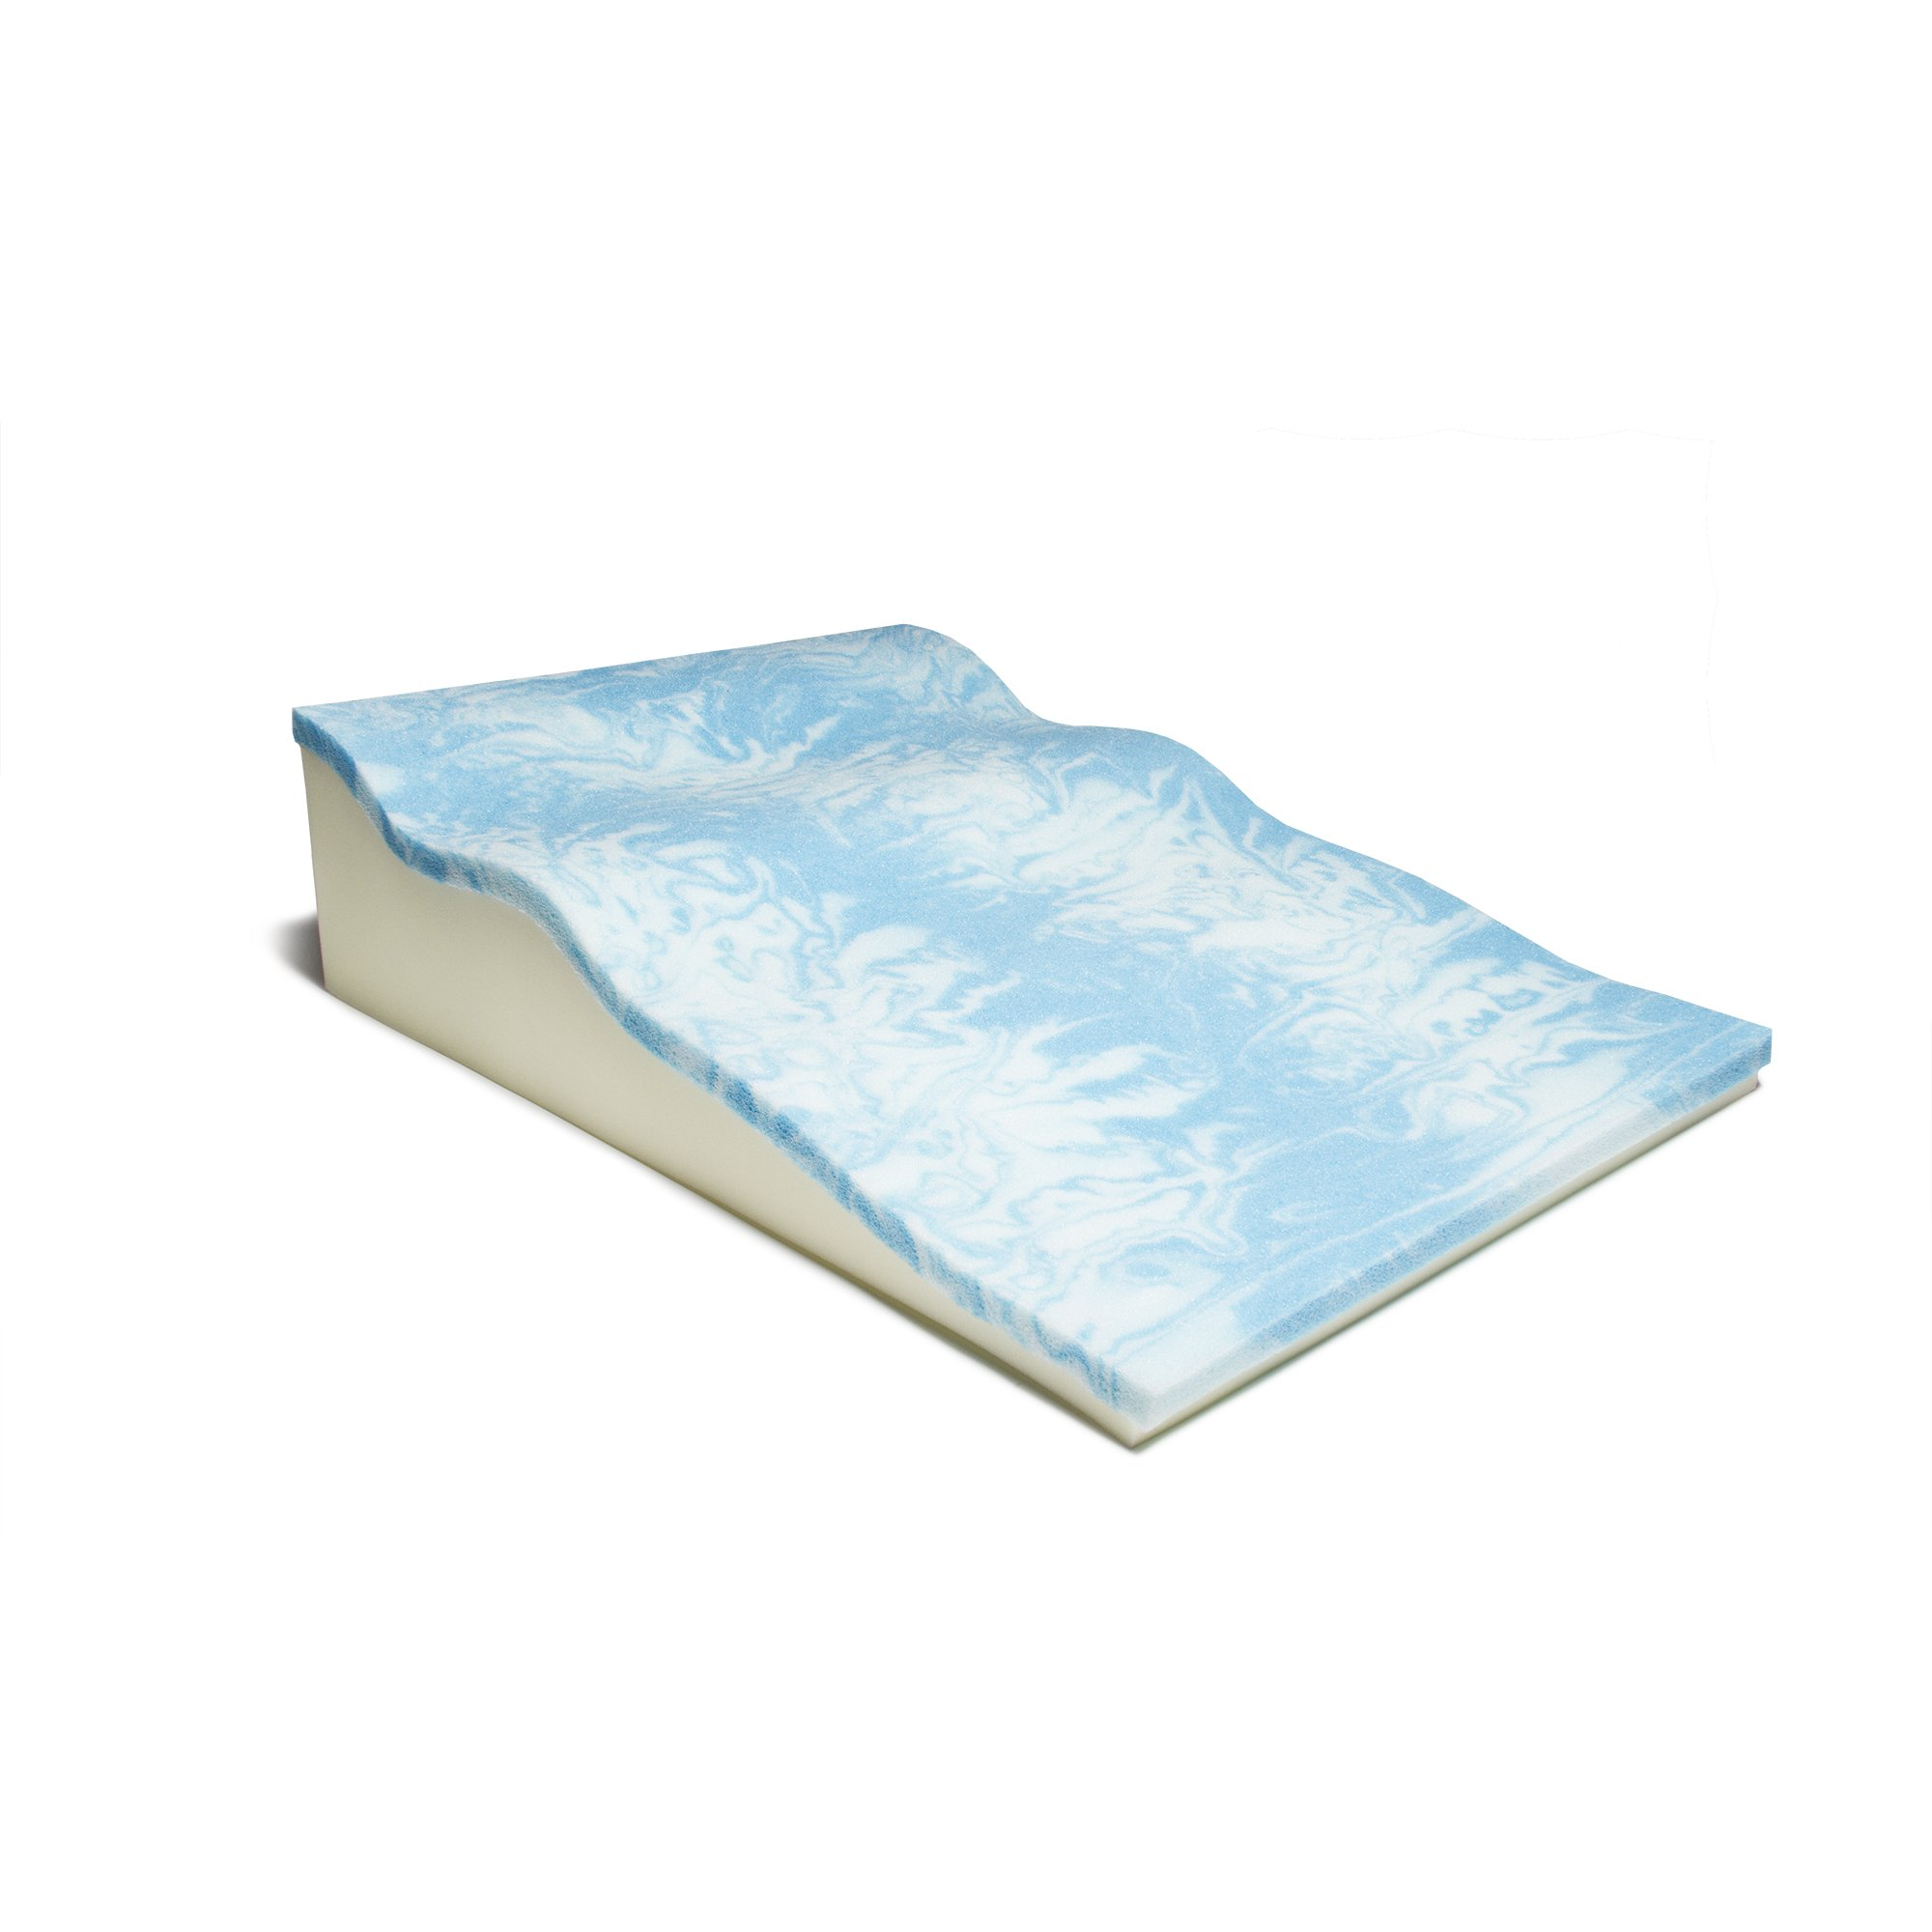 Avana Contoured Bed Wedge Support Pillow for Side Sleepers with Cool Gel Memory Foam by Avana (Image #4)